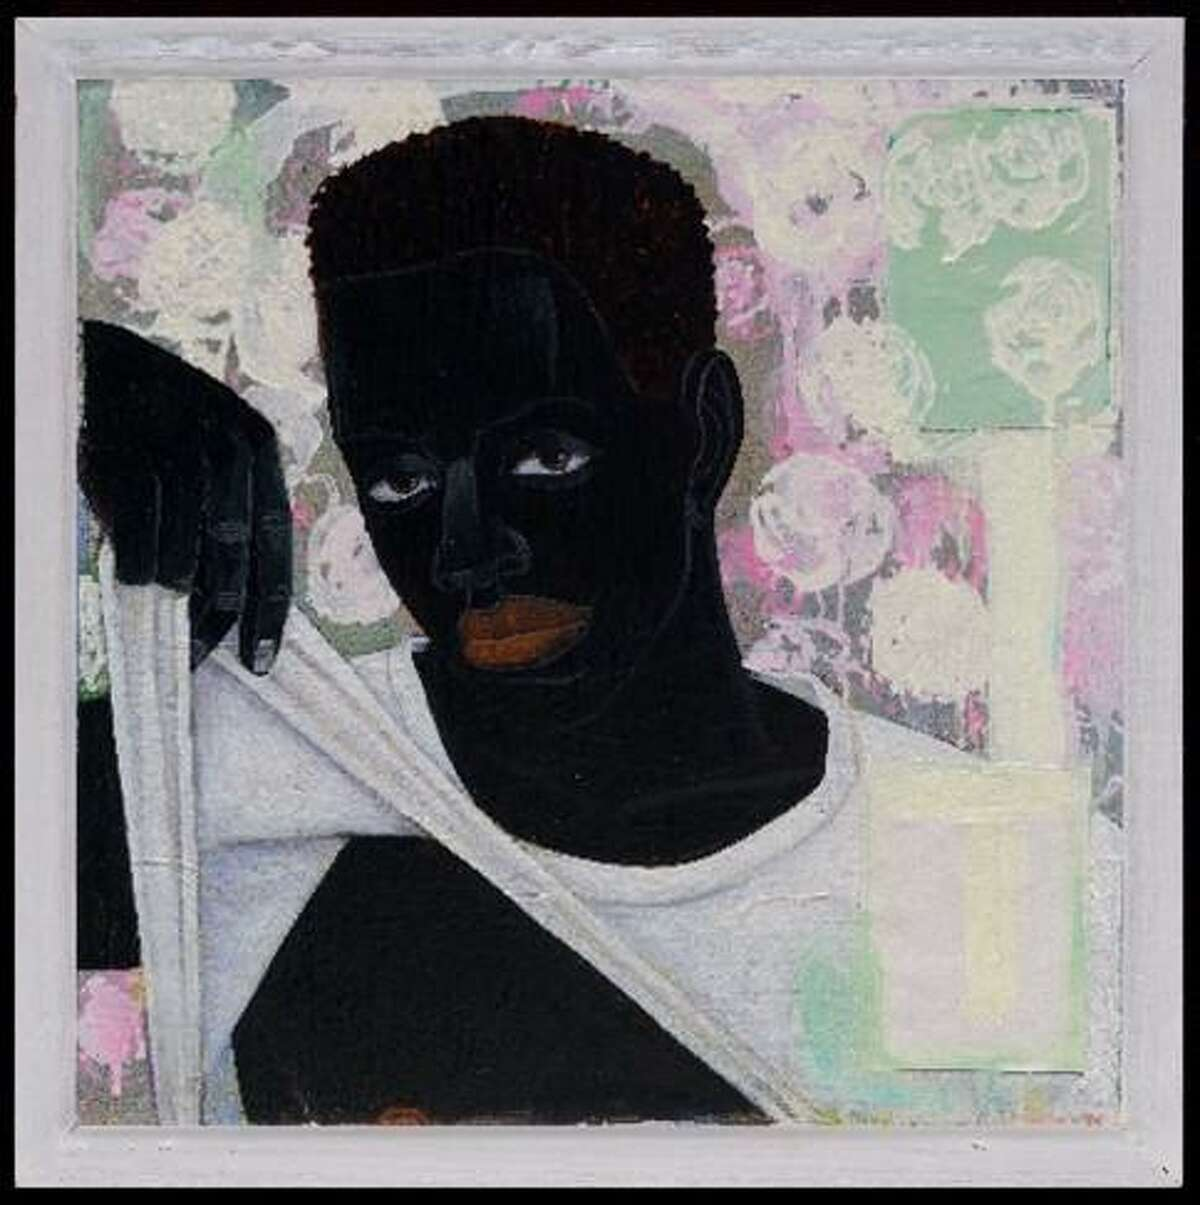 Kerry James Marshall (b. 1955), Supermodel, 1994, Acrylic and collage on canvas, Museum of Fine Arts, Boston; The John Axelrod Collection-Frank B. Bemis Fund, Charles H. Bayley Fund, and the Heritage Fund for a Diverse Collection, 2011.1825,